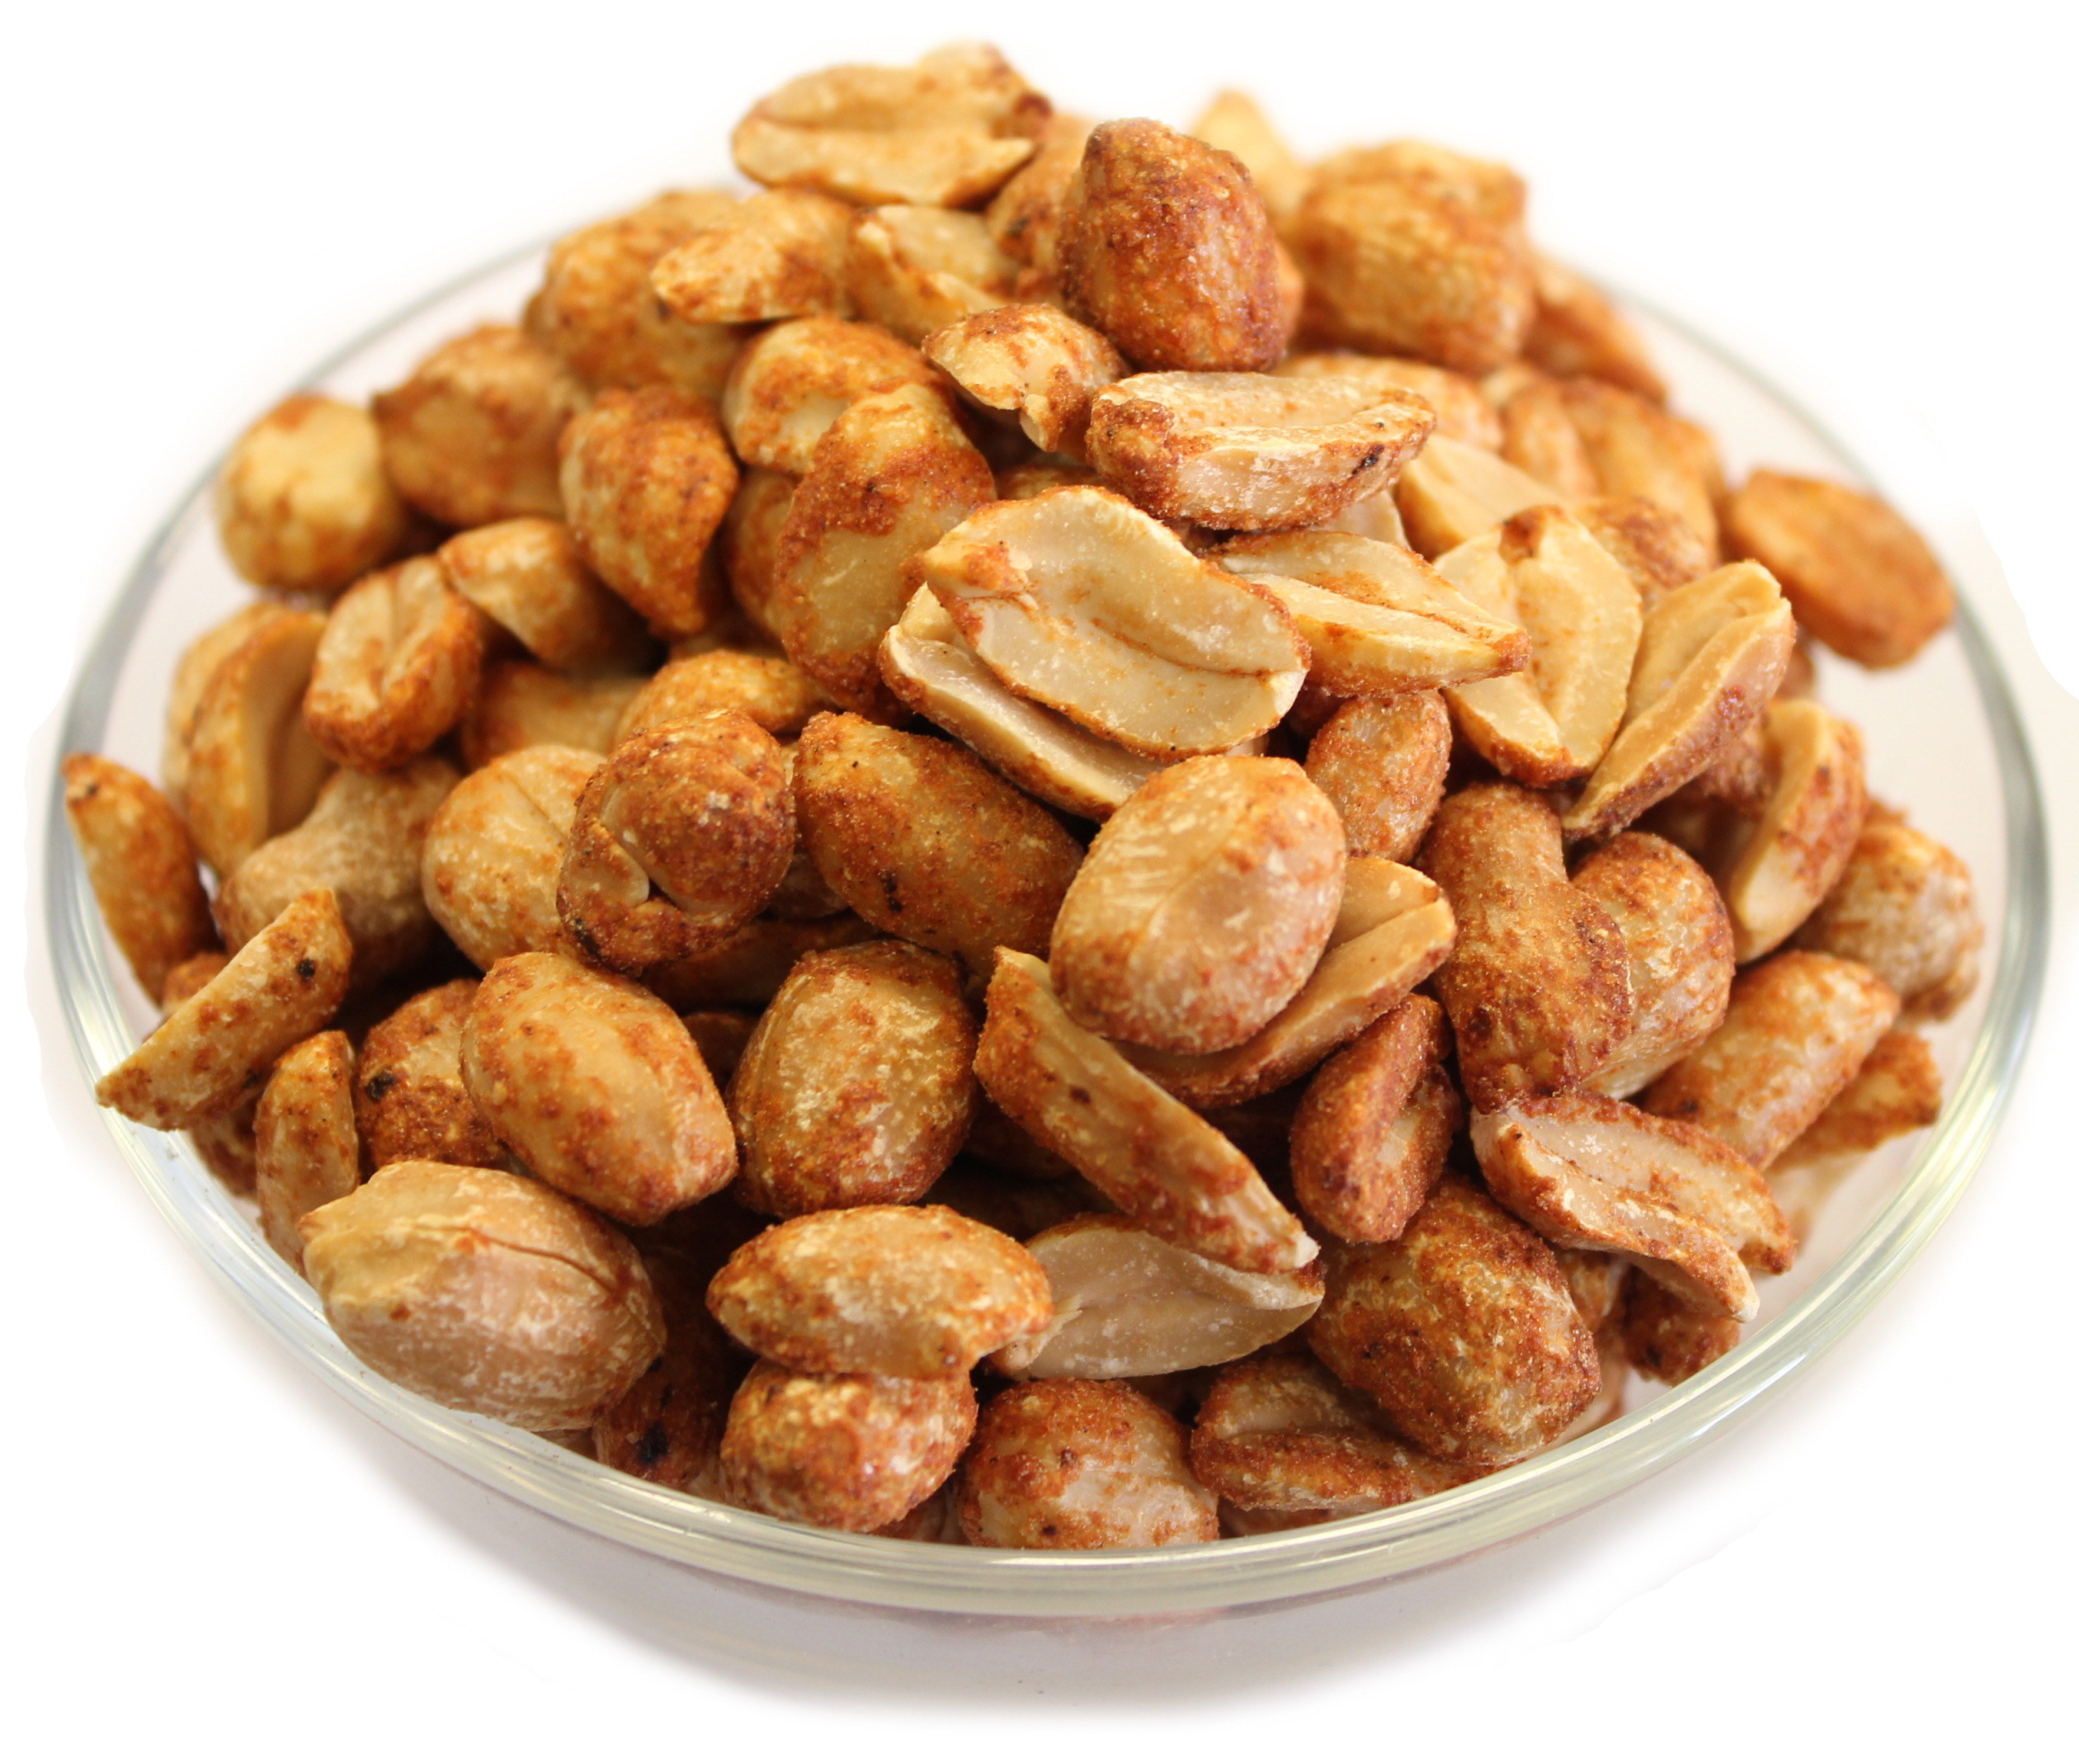 Roasted Peanuts with Chili